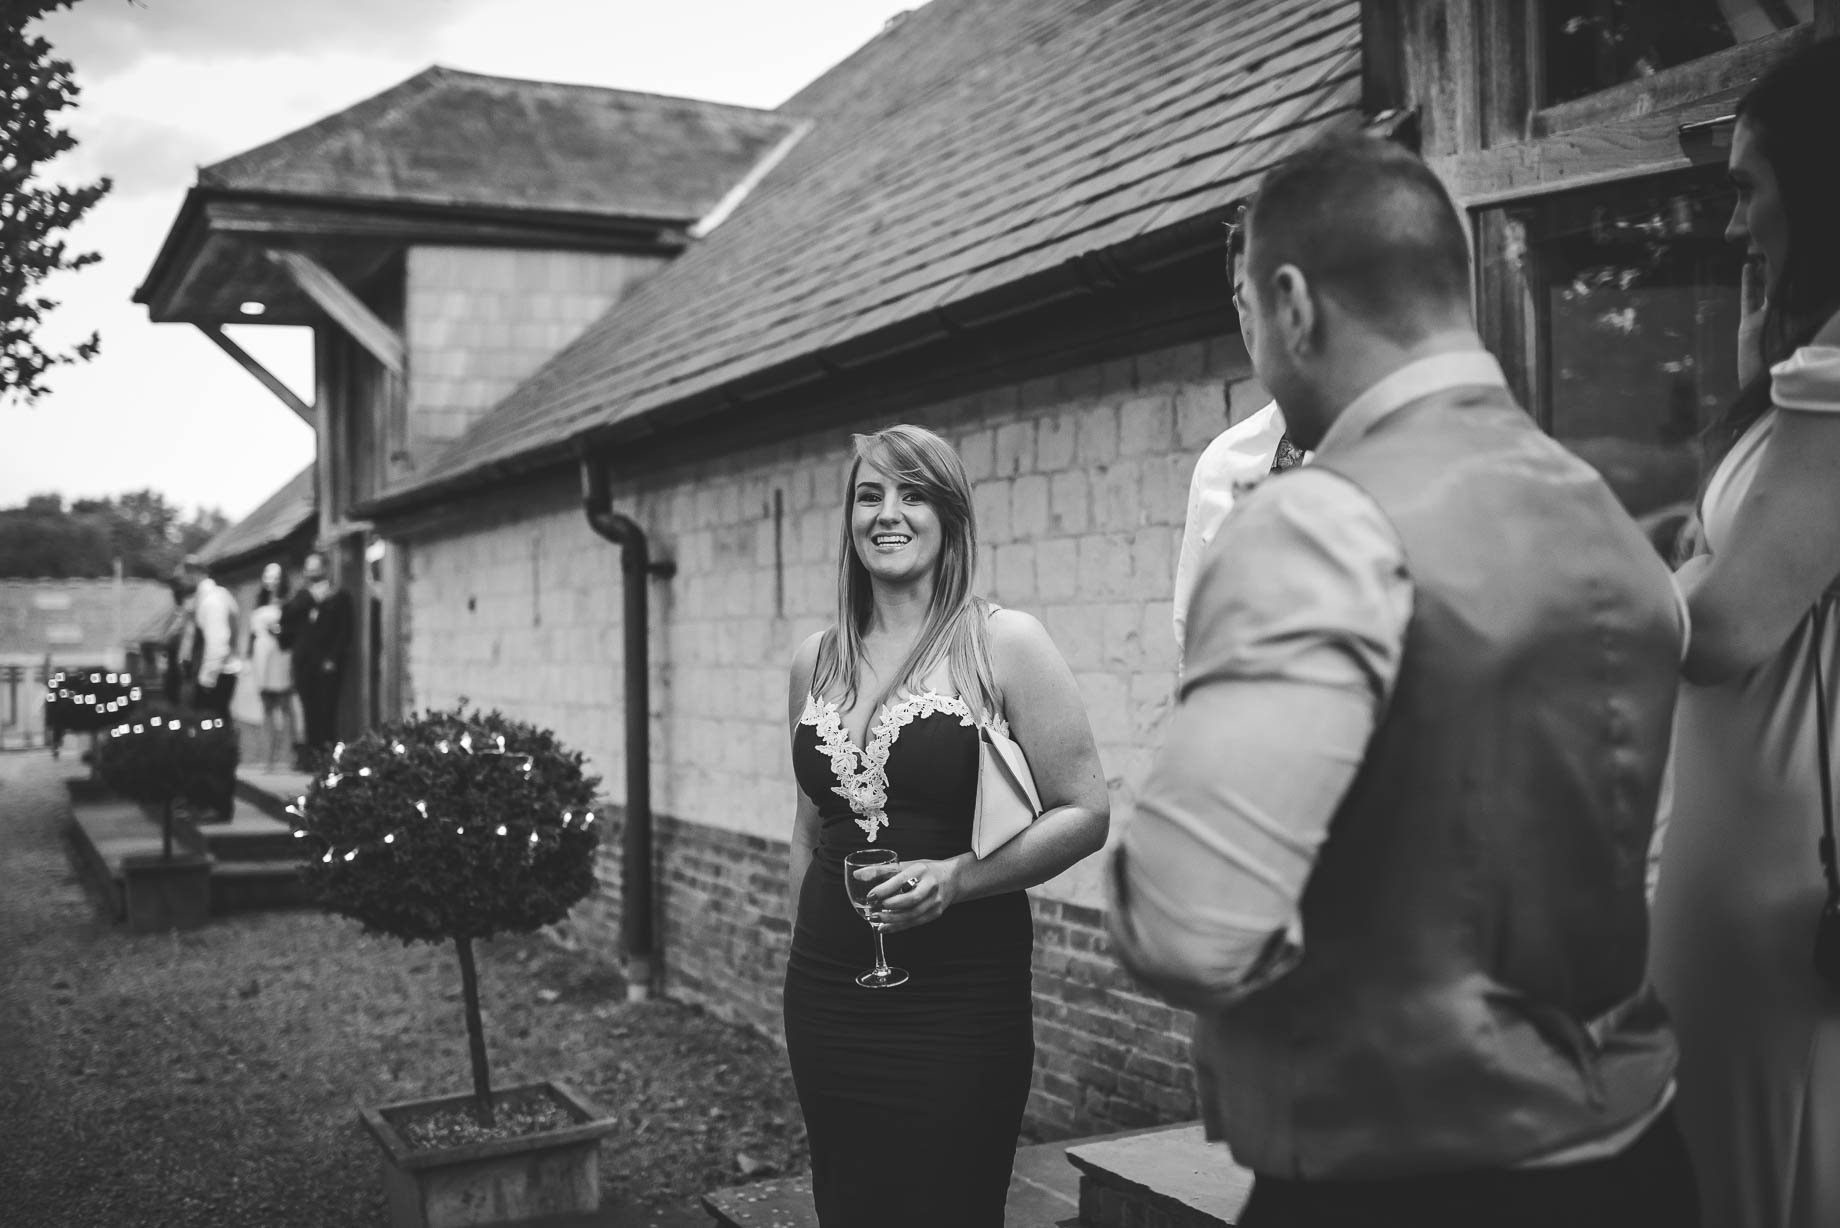 Bury Court Barn wedding photography - Guy Collier - Kate and Russ (169 of 187)